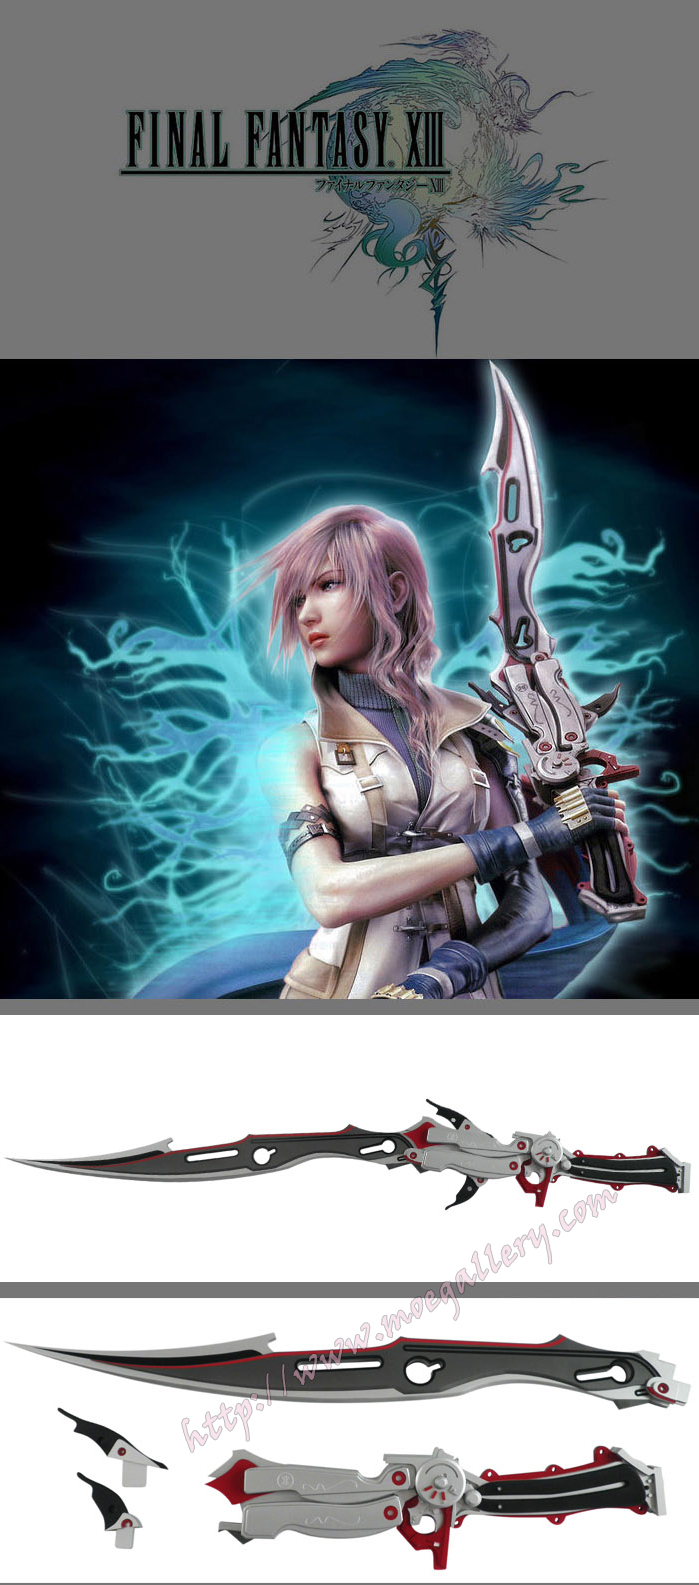 Final Fantasy XIII Cosplay Lightning's weapon Blaze Edge Props